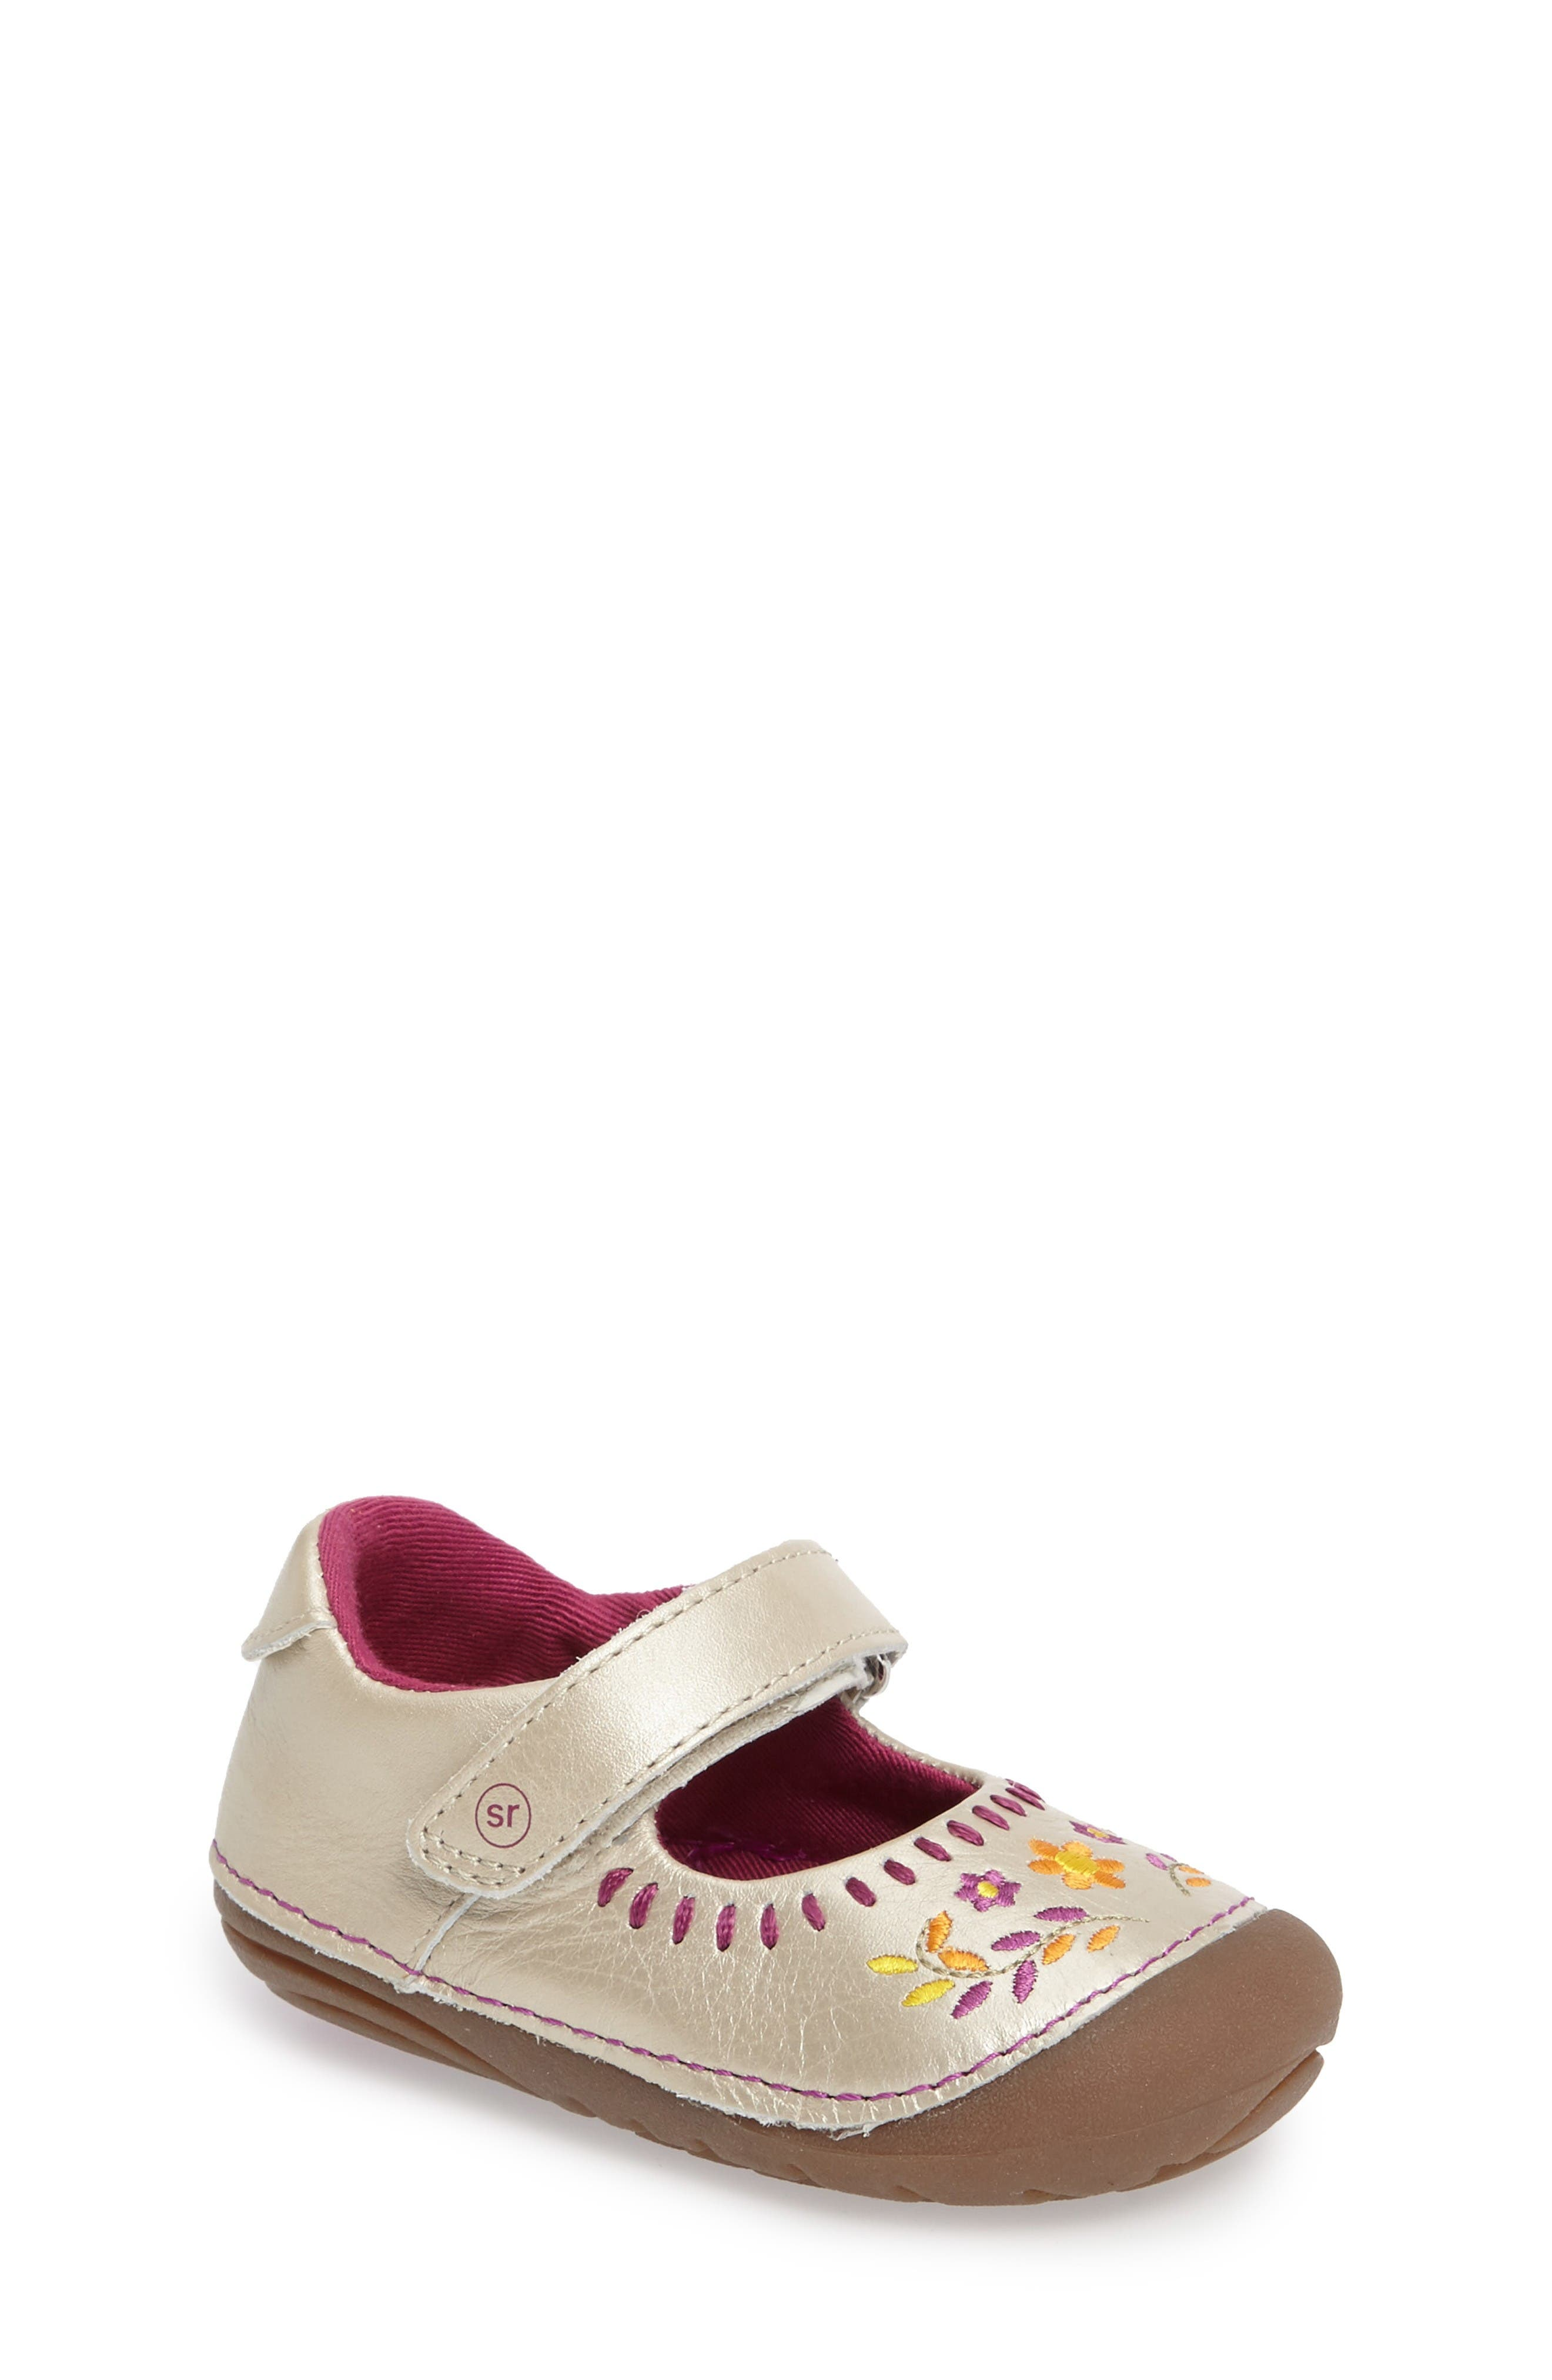 Stride Rite Atley Flower Embroidered Mary Jane (Baby & Walker)